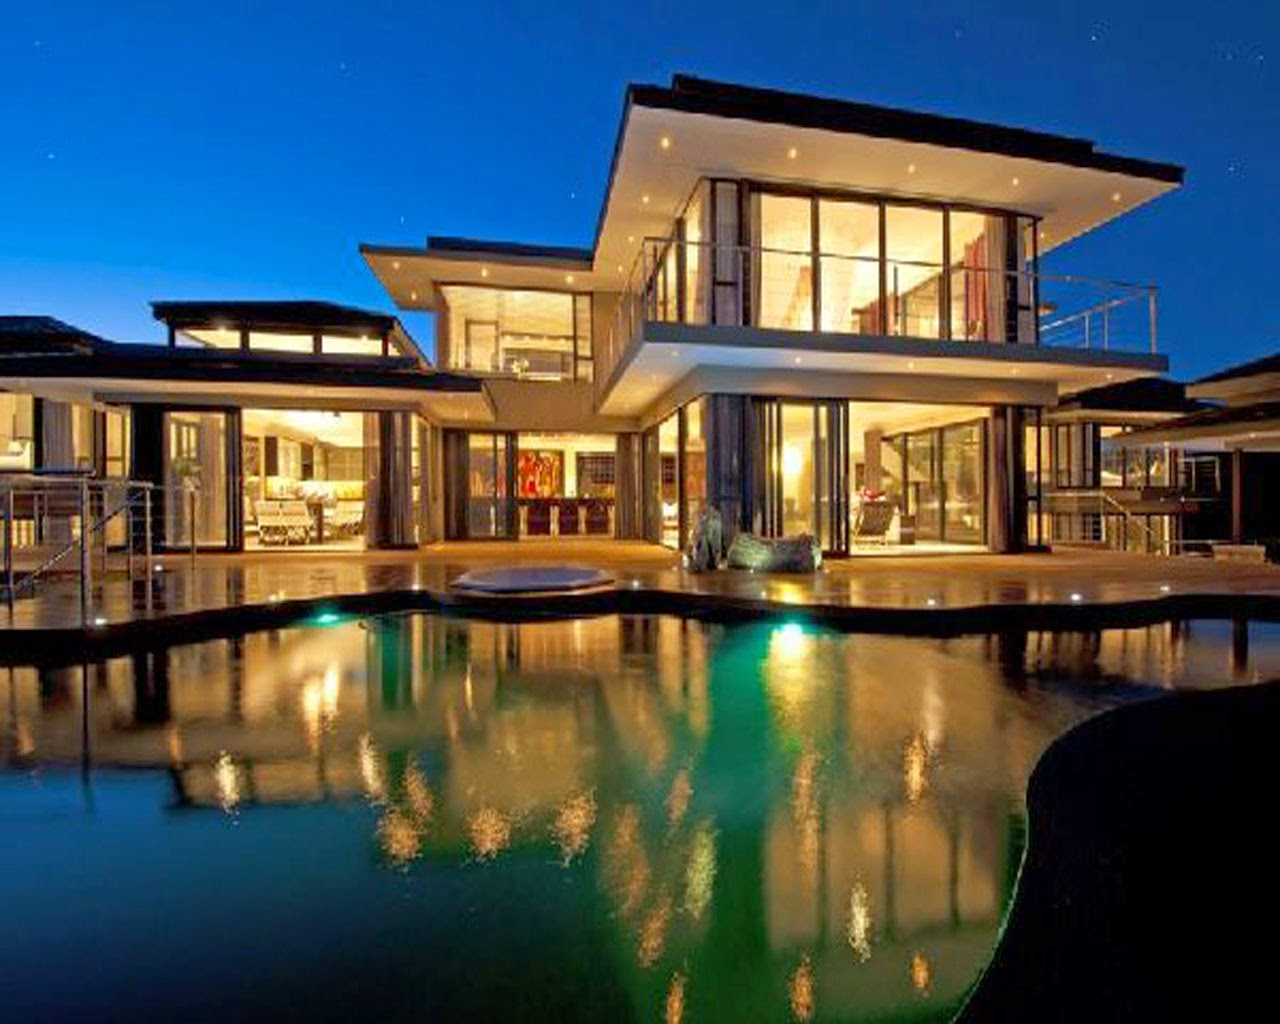 Luxury House Wallpaper HD